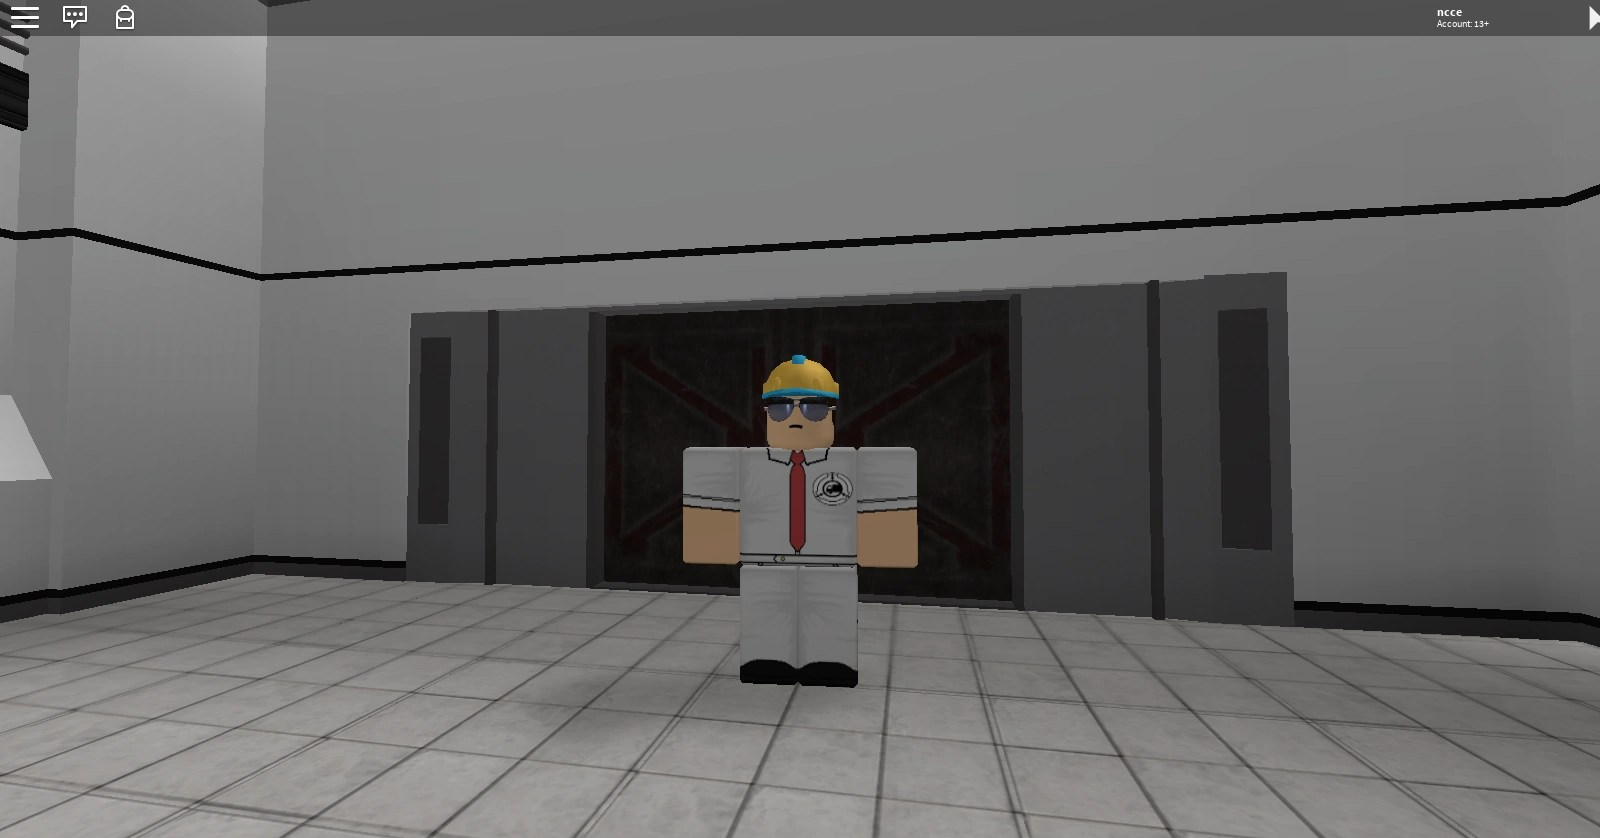 Scp Roblox - Year of Clean Water